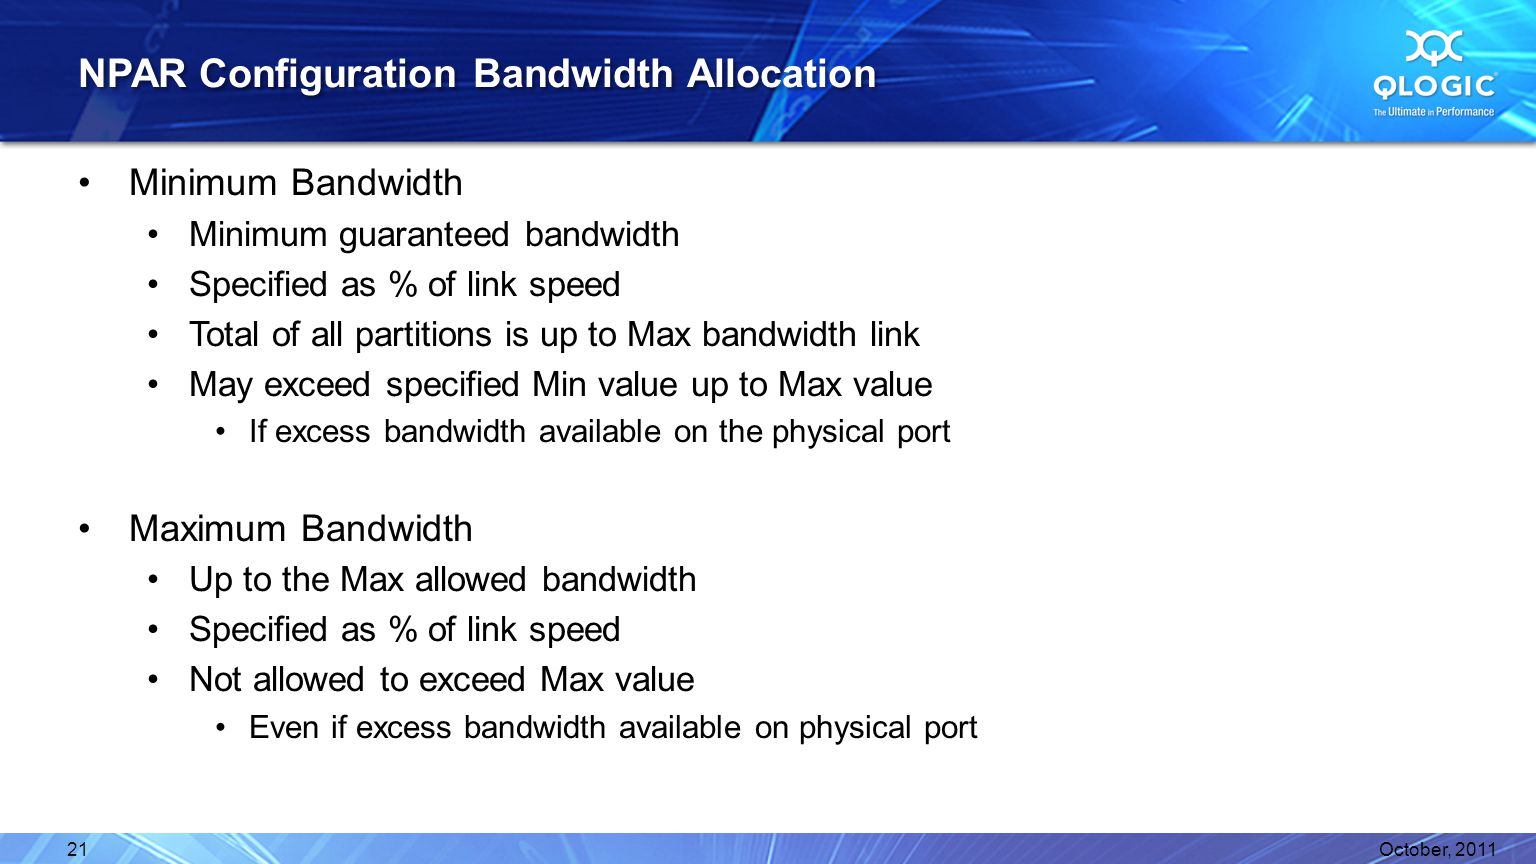 NPAR Configuration Bandwidth Allocation Minimum Bandwidth Minimum guaranteed bandwidth Specified as % of link speed Total of all partitions is up to Max bandwidth link May exceed specified Min value up to Max value If excess bandwidth available on the physical port Maximum Bandwidth Up to the Max allowed bandwidth Specified as % of link speed Not allowed to exceed Max value Even if excess bandwidth available on physical port October, 201121